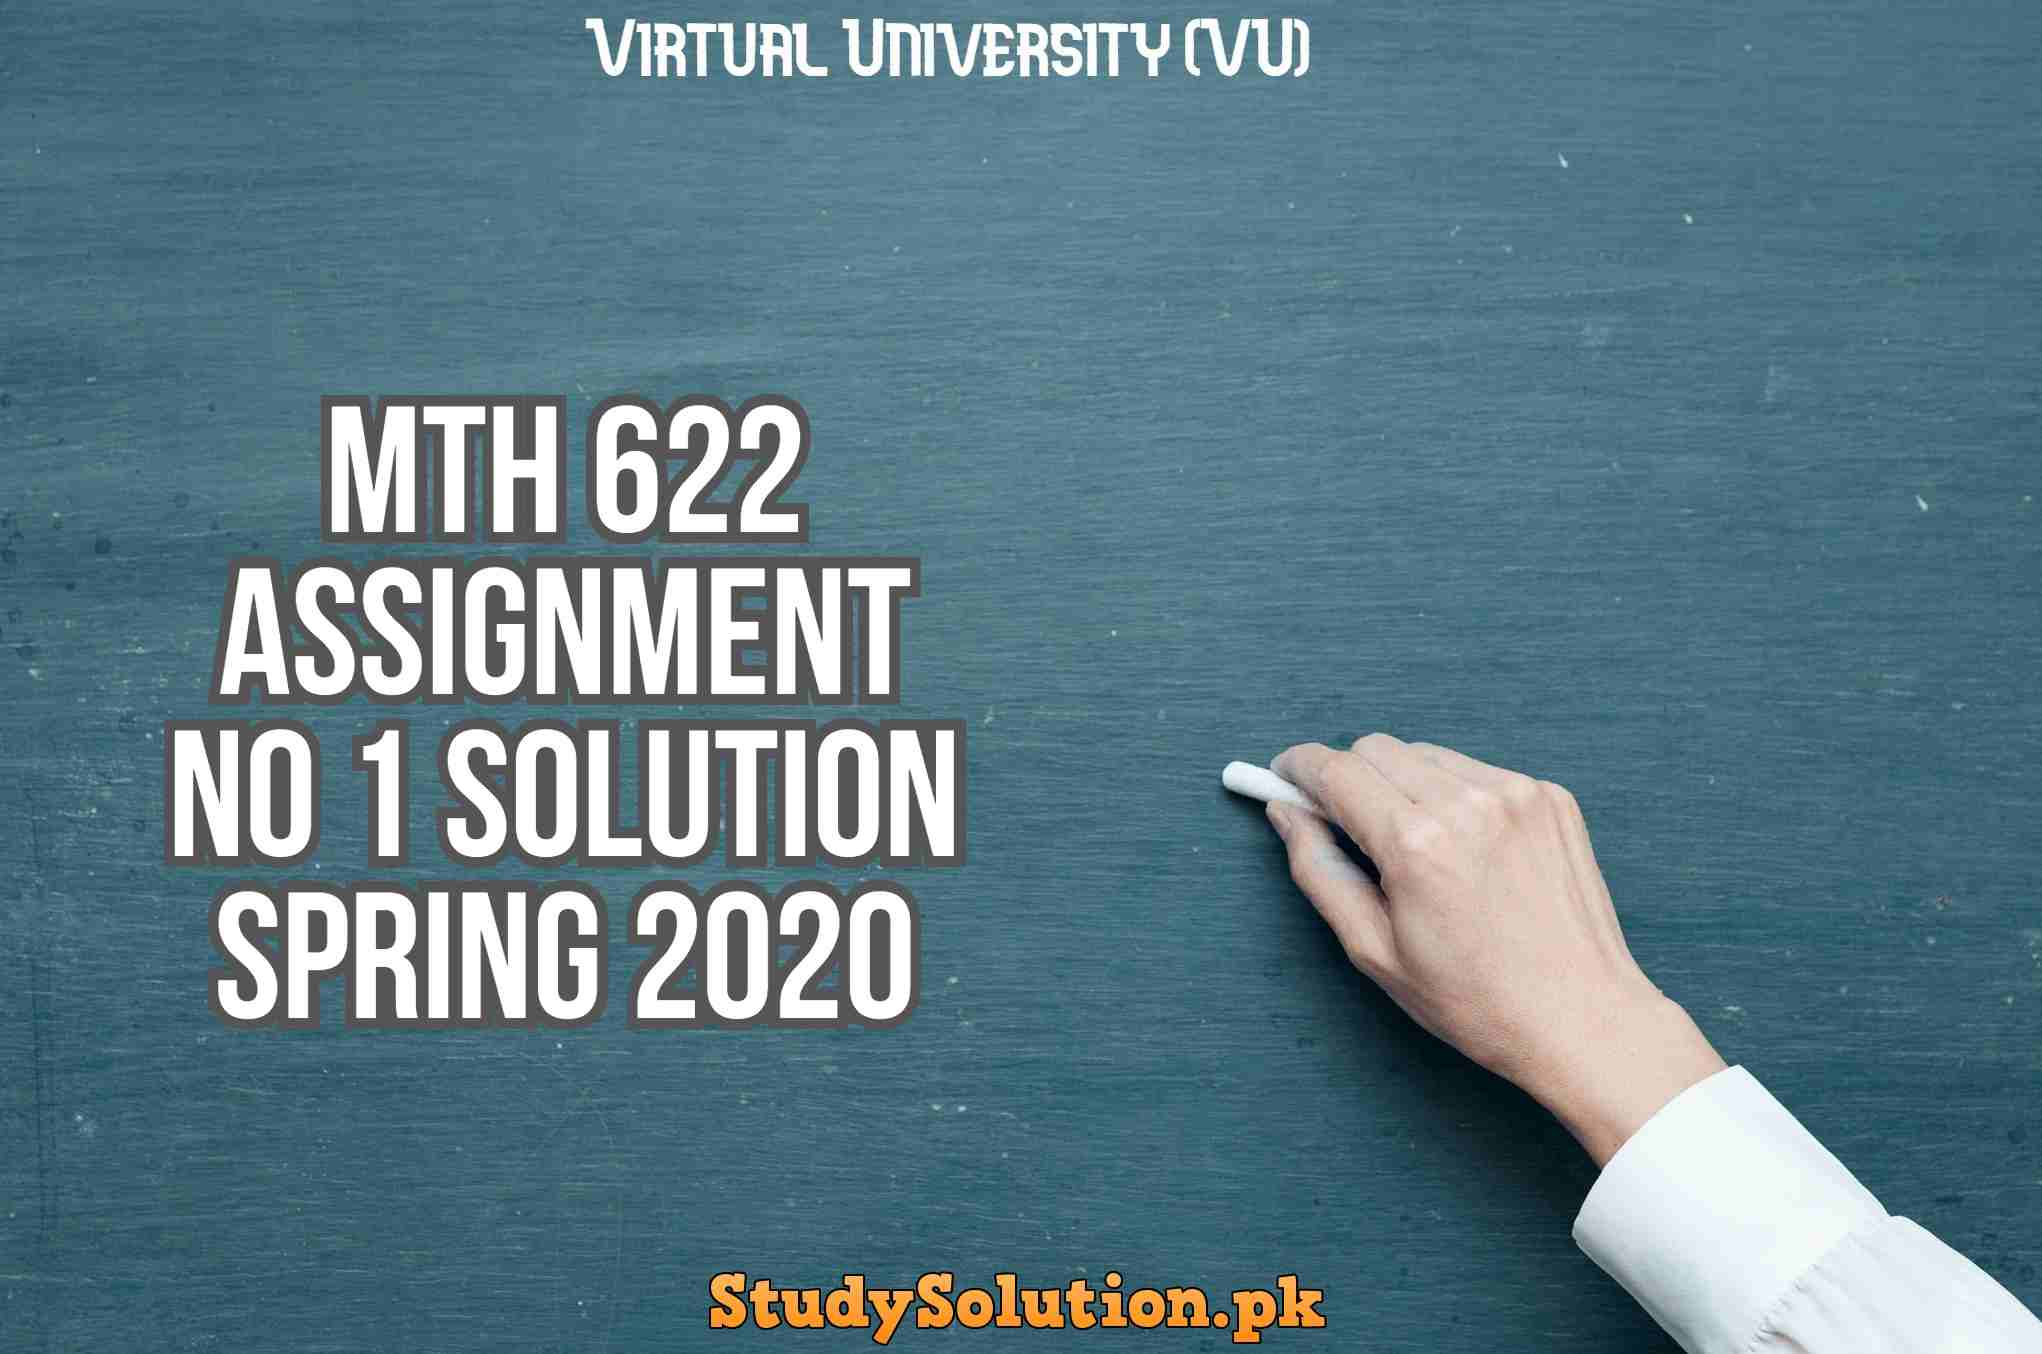 MTH 622 Assignment No 1 Solution Spring 2020